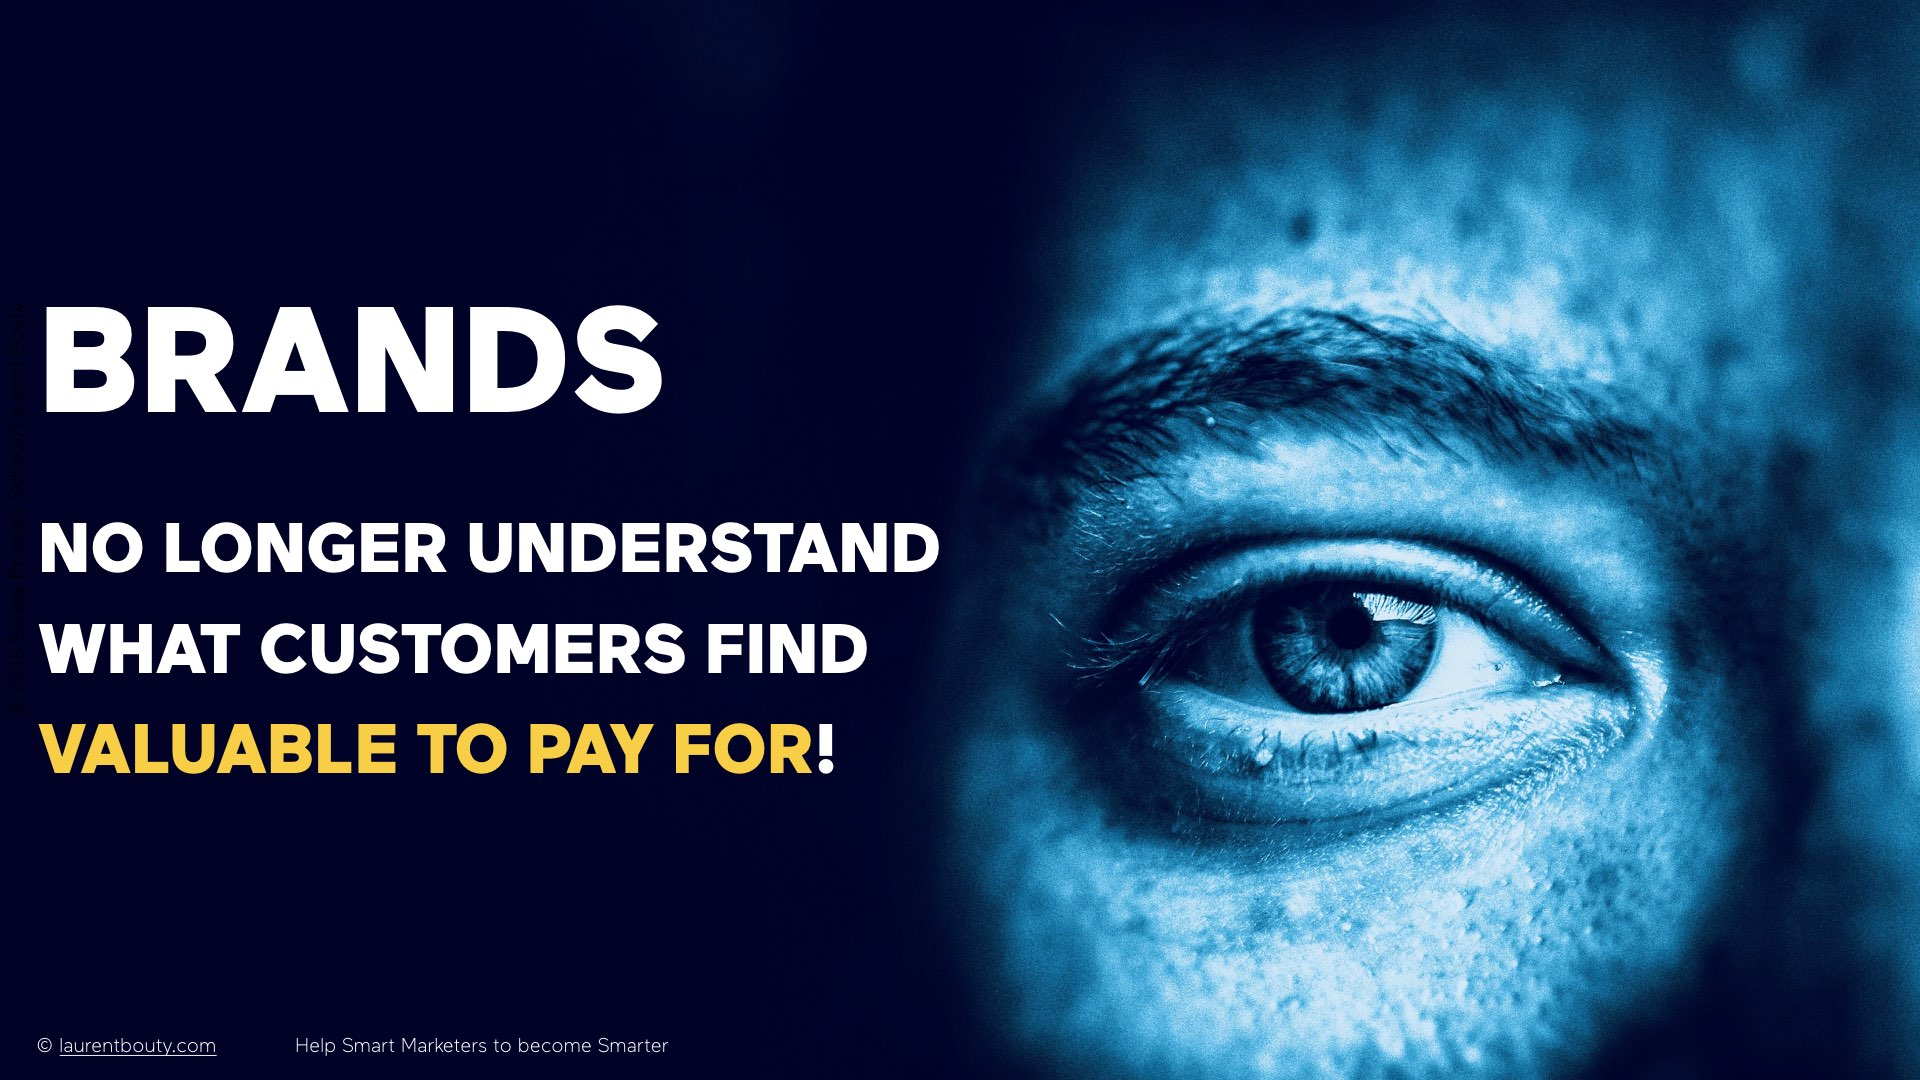 Marketers, Brands no longer understand what customer find valuable to pay for